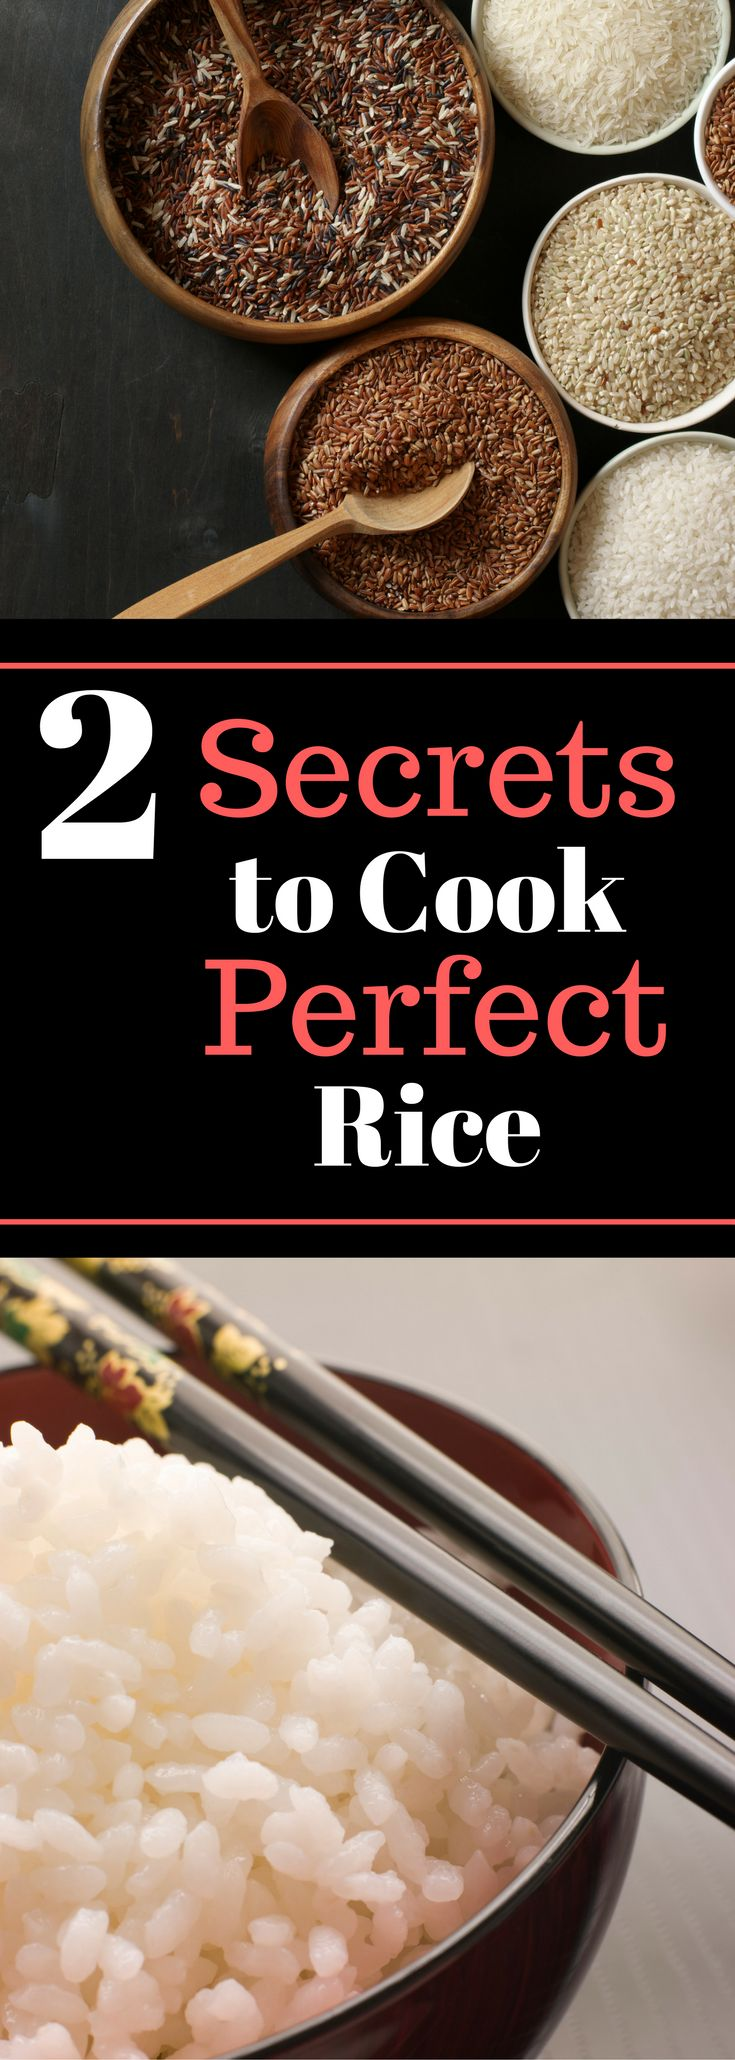 2 Secrets How To Cook Perfect Rice